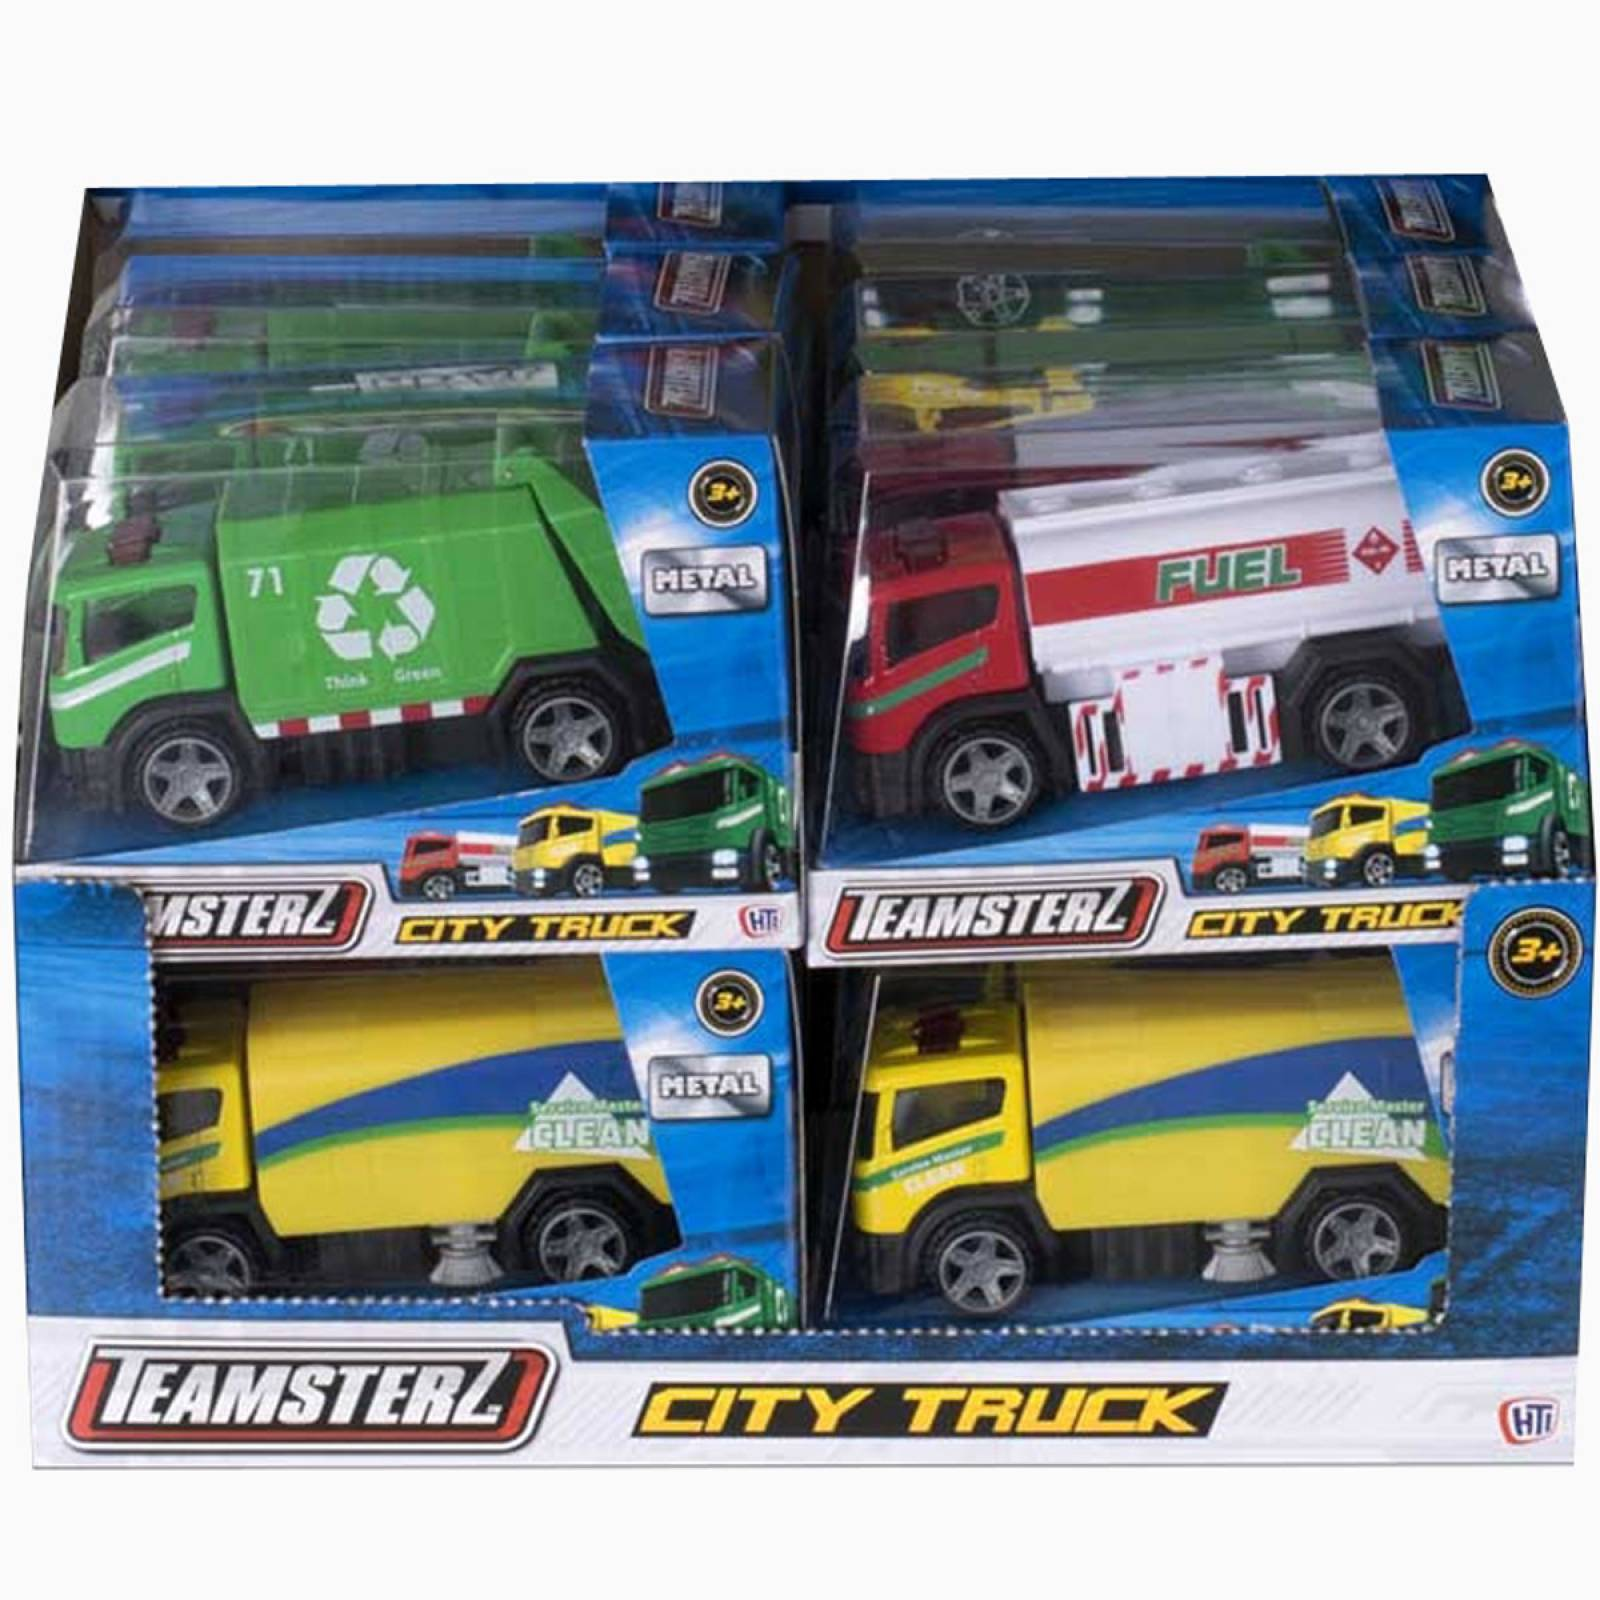 Teamsterz City Truck - Assorted Design thumbnails